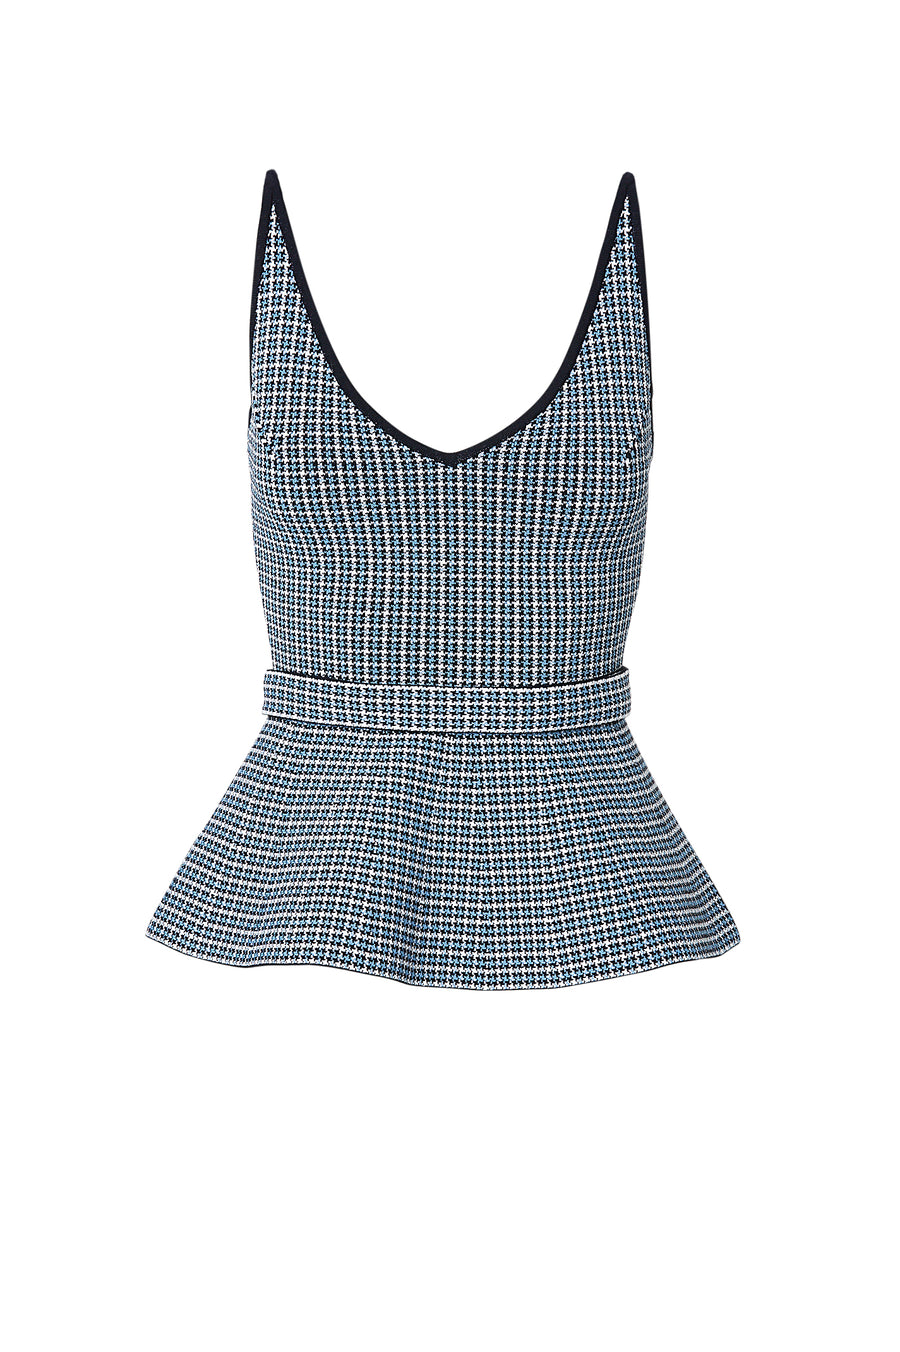 CREPE KNIT PLAID STRAPPY TOP